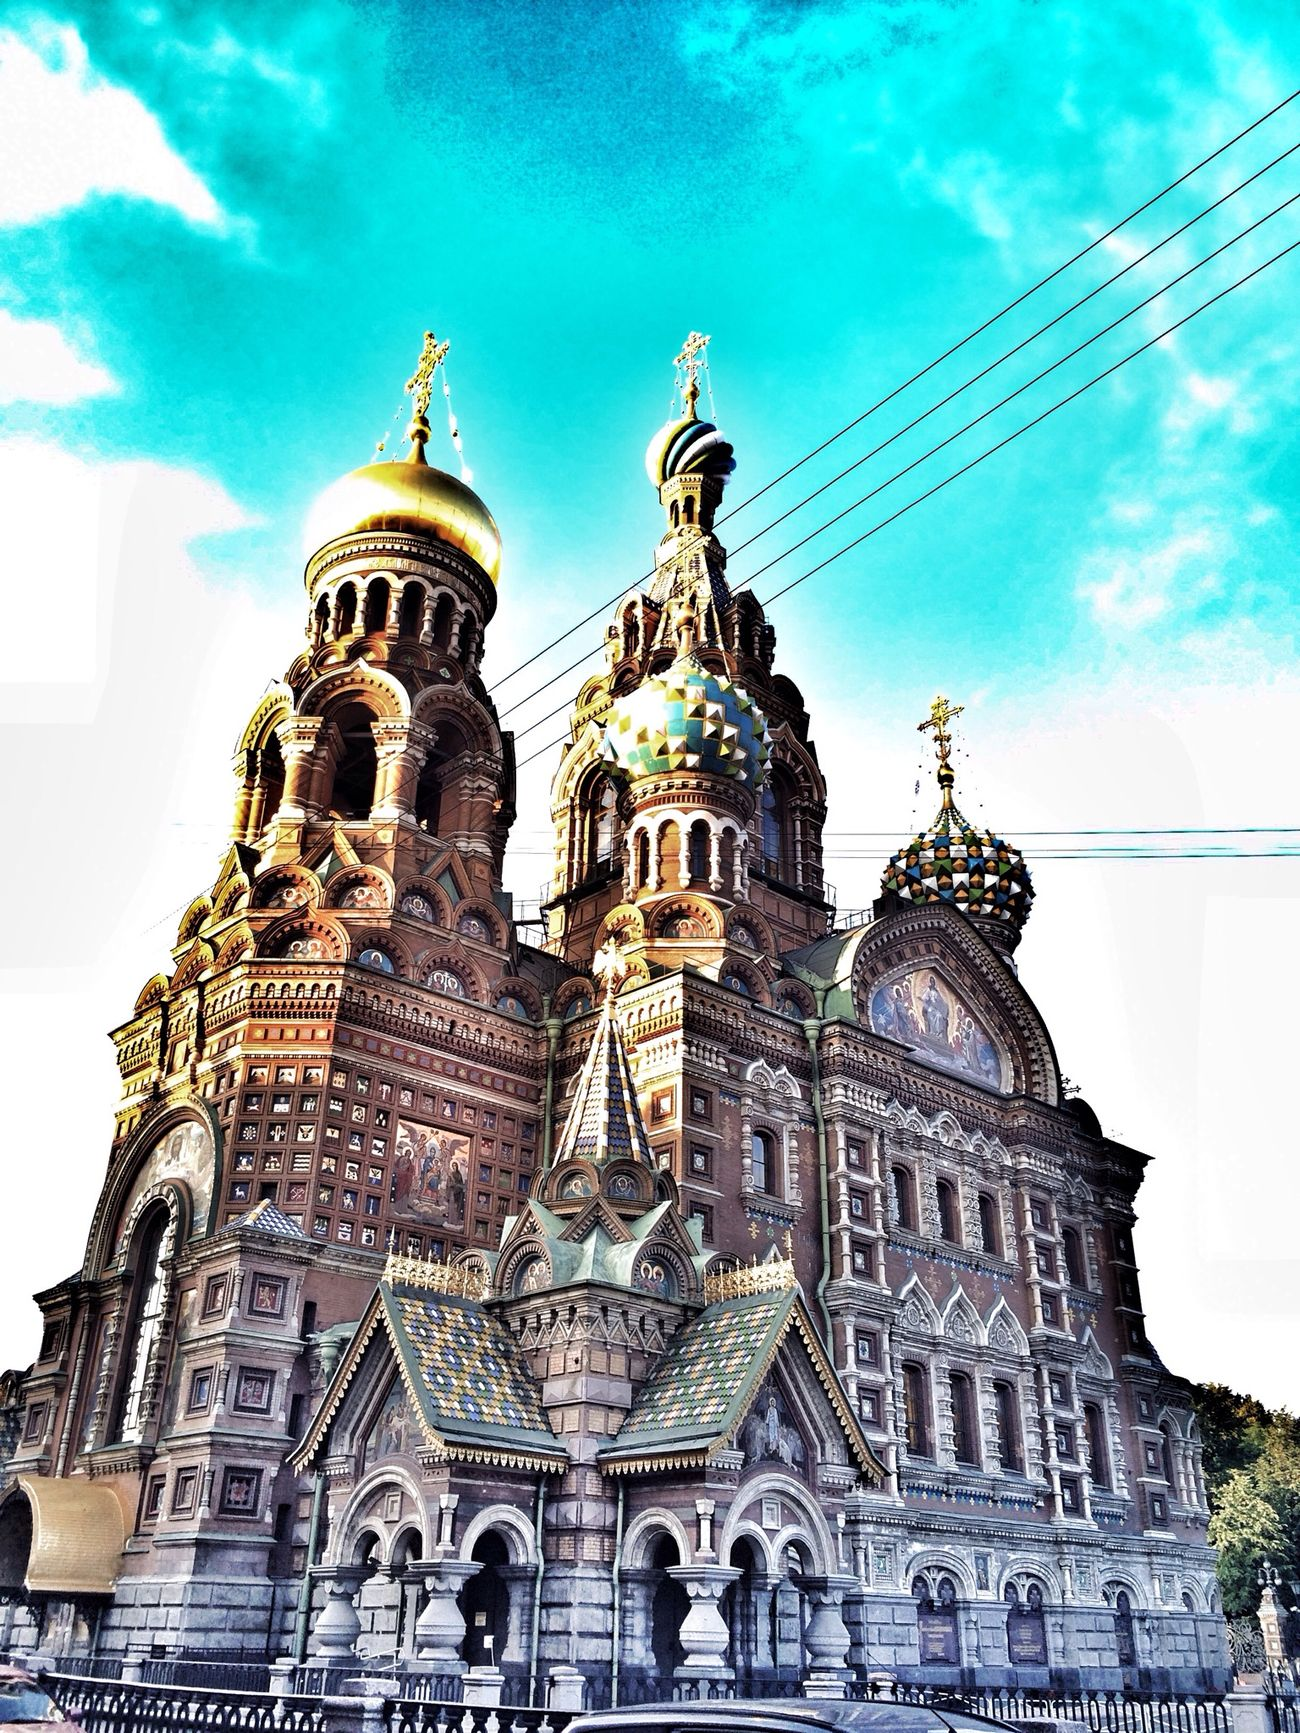 Cityscapes shot in st.Petersburg the orthOdox cathedral church... Architectureinrussia Eyemphotolist Capturewithpassion Buildingsandchurches Orthodoxchurch Iosphotography